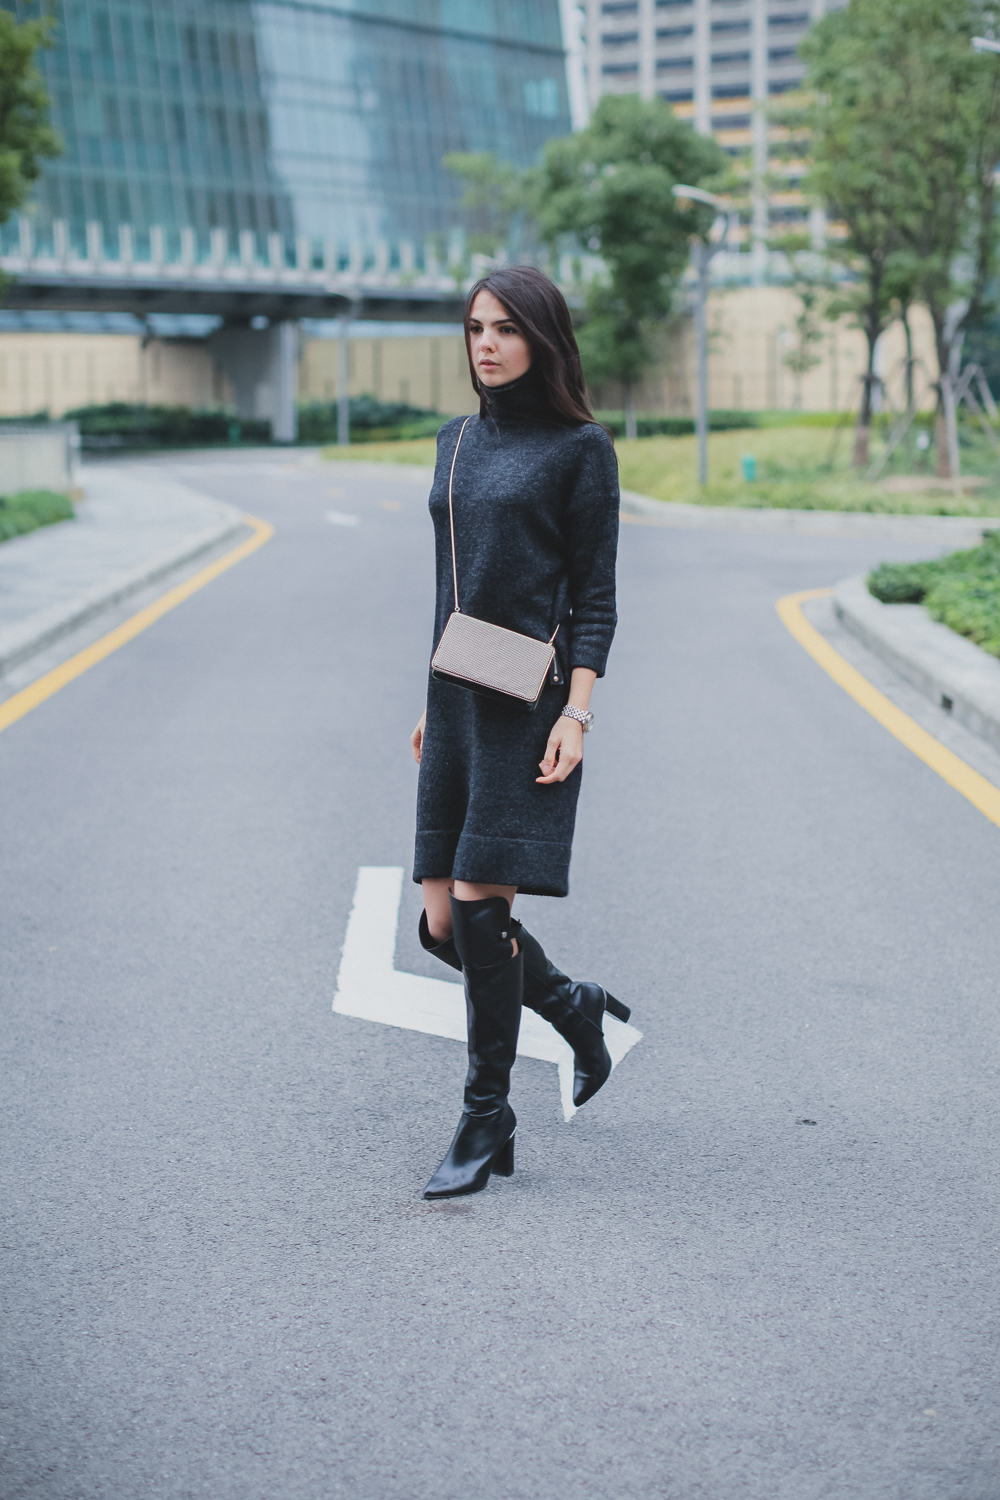 Doina Ciobanu is wearing a charcoal sweater dress from Zara, and the over the knee boots are from Reiss